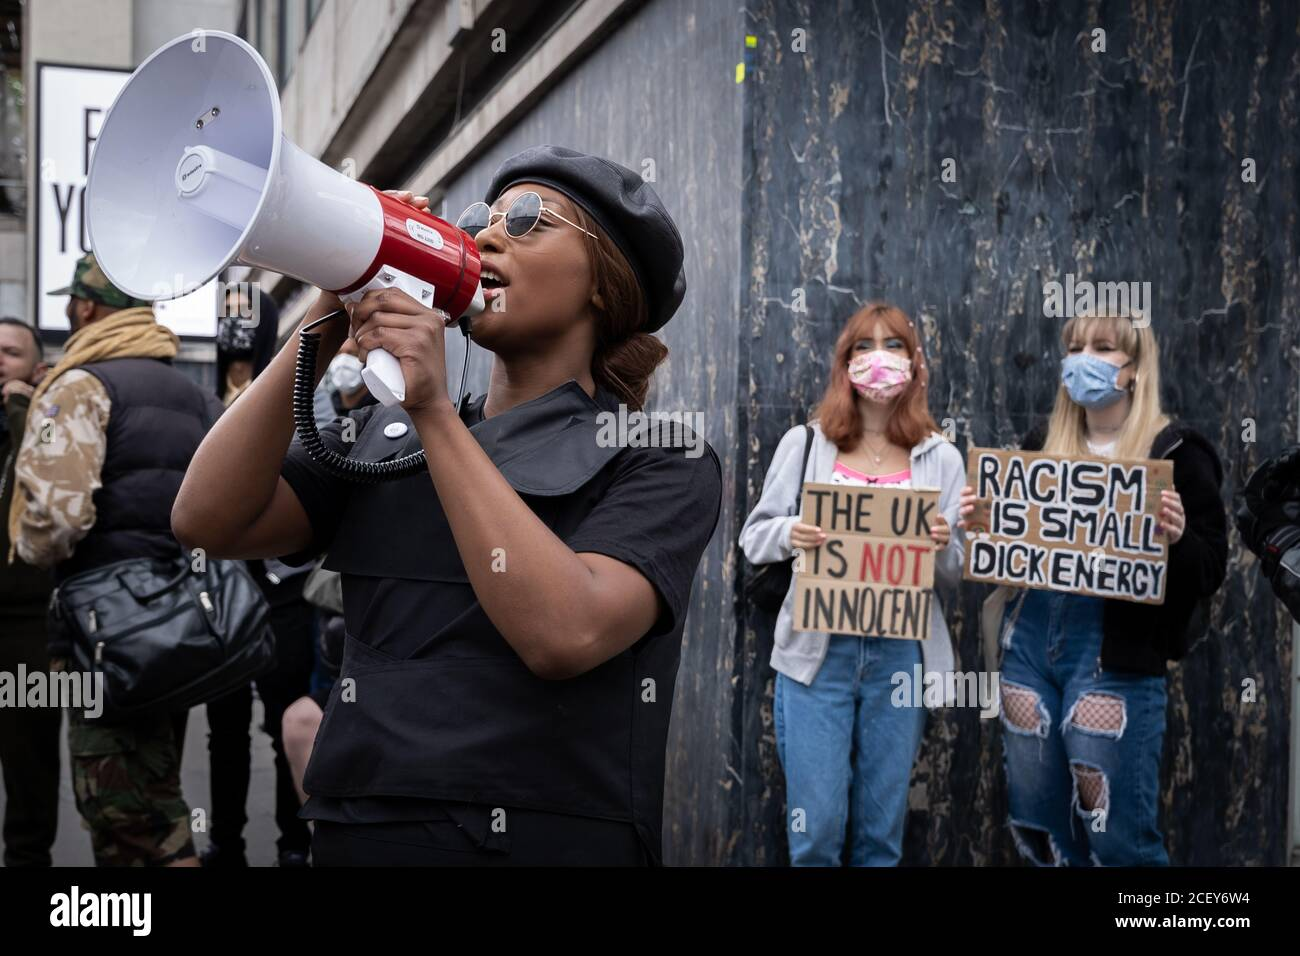 Taking The Initiative Party (TTIP) political party, inspired by the Black Lives Matter movement, protest marches from Notting Hill in London, UK. Stock Photo